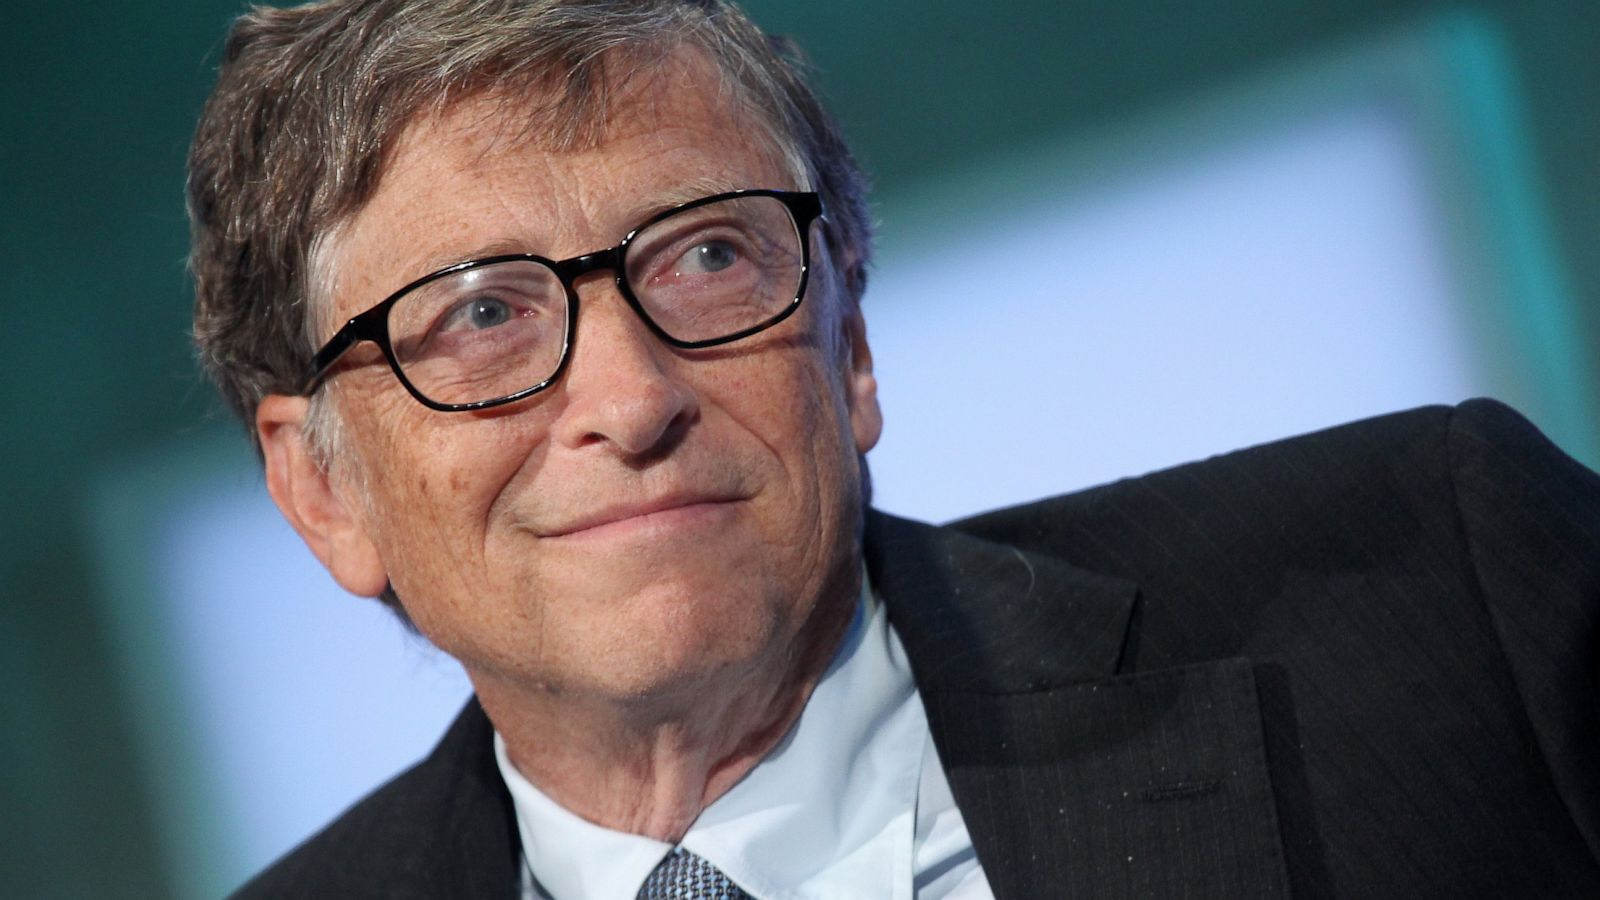 gty_bill_gates_Speakers_thg-130926_16x9_1600